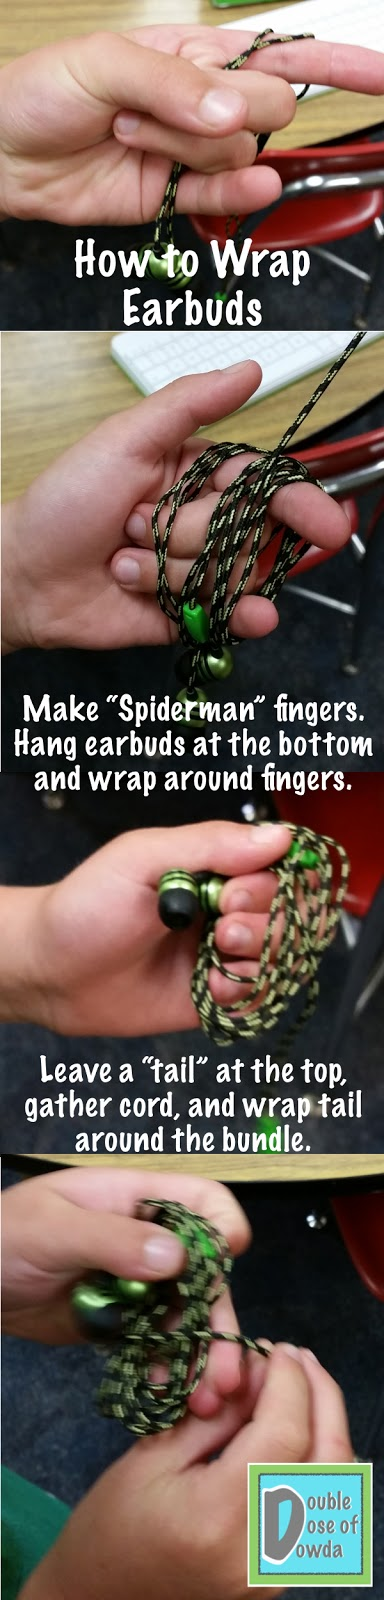 """Use """"Spiderman"""" fingers to wrap earbuds and prevent tangles"""